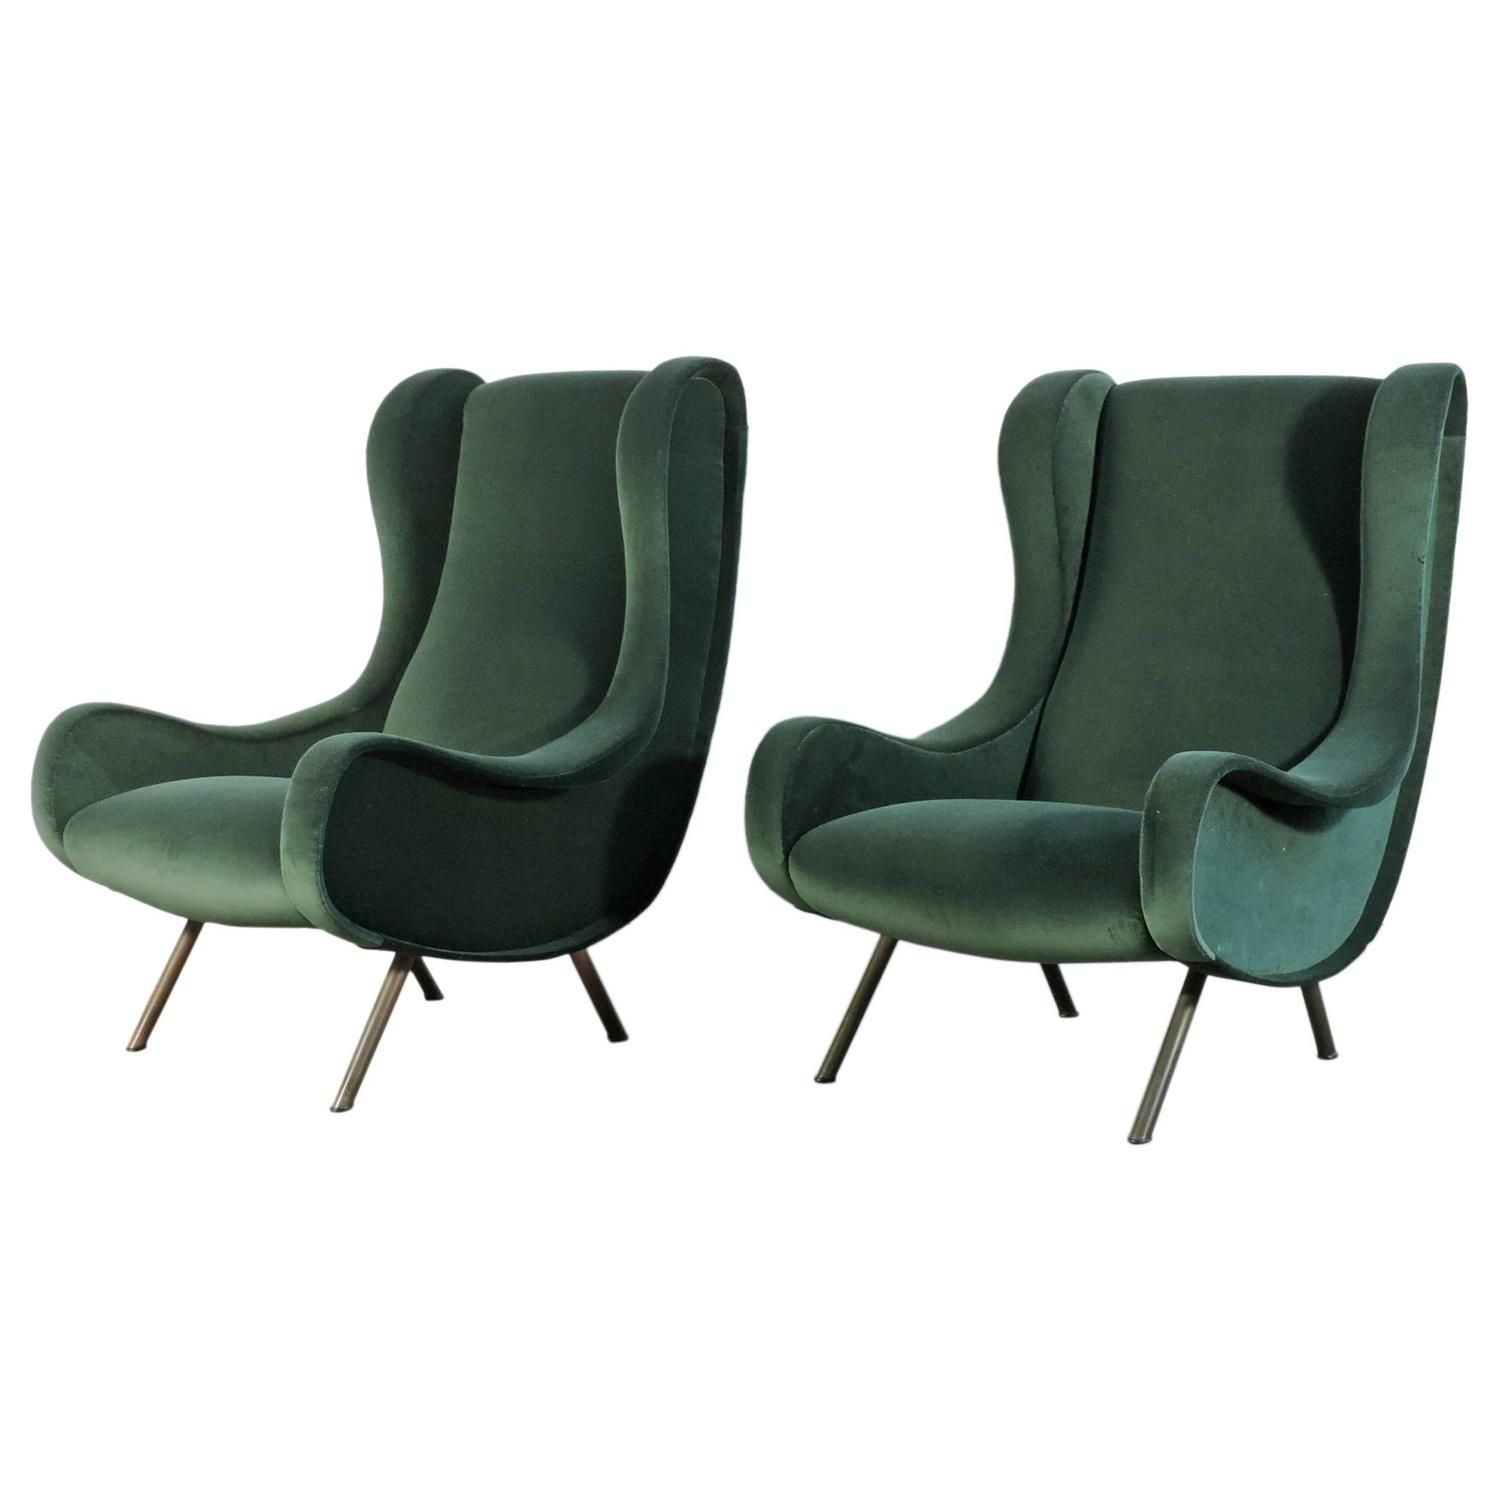 Marco Zanuso Senior Pair Of Armchairs From A Unique Collection